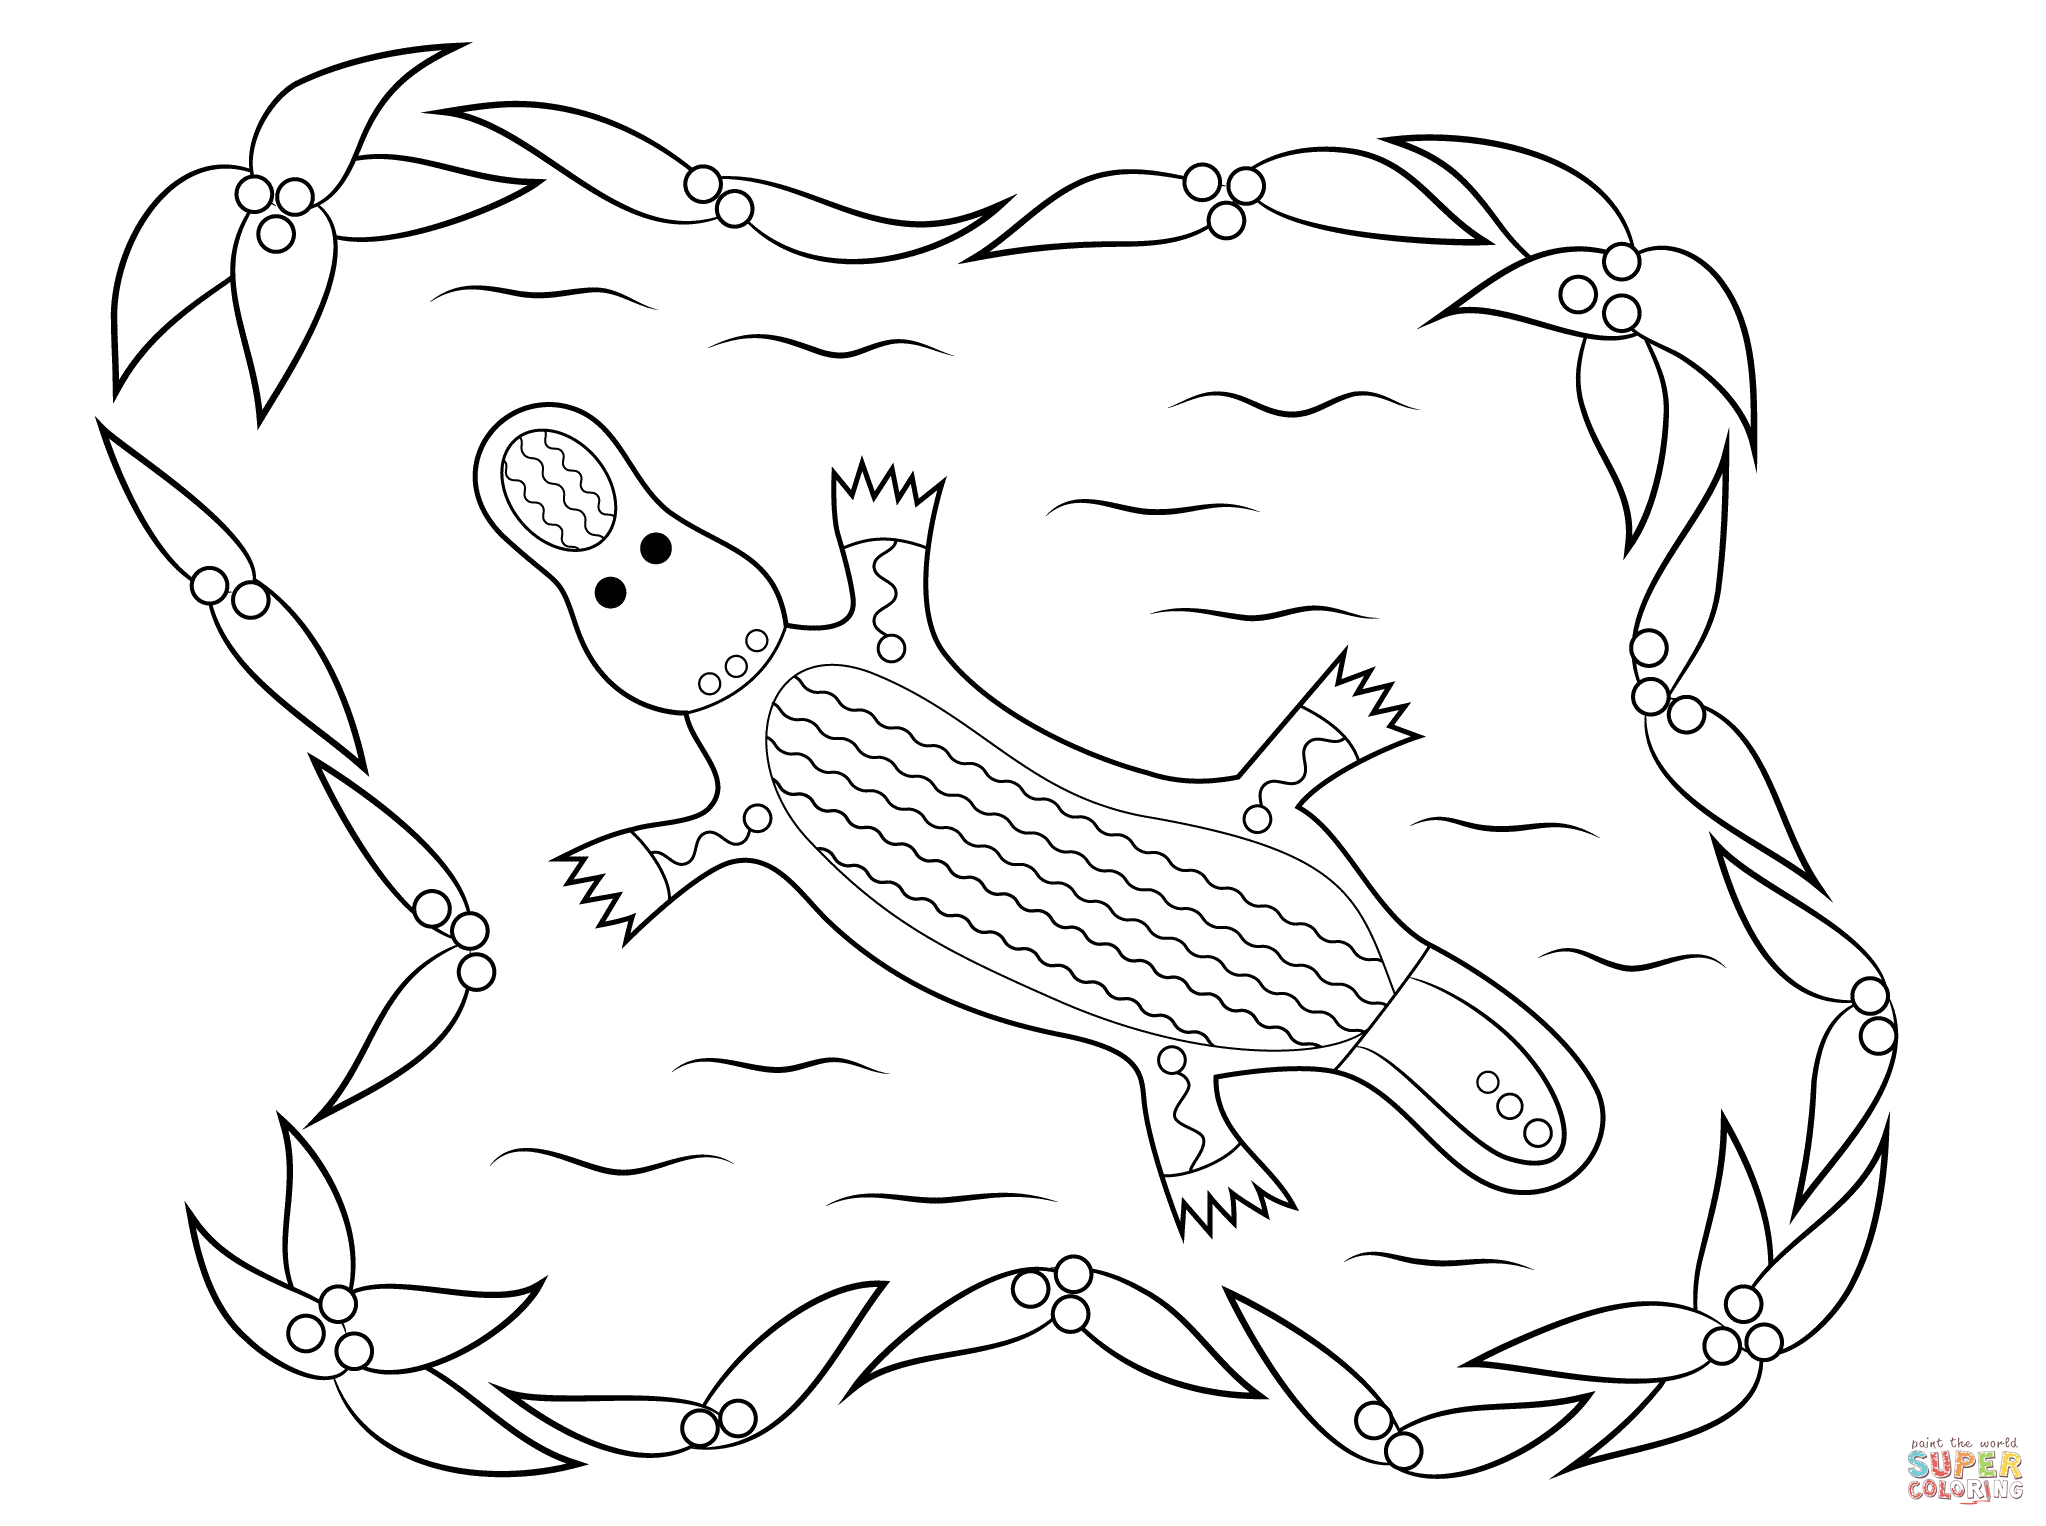 aboriginal dot painting colouring pages 39kangaroo colouring single pdf page colouring page39 by painting dot aboriginal colouring pages